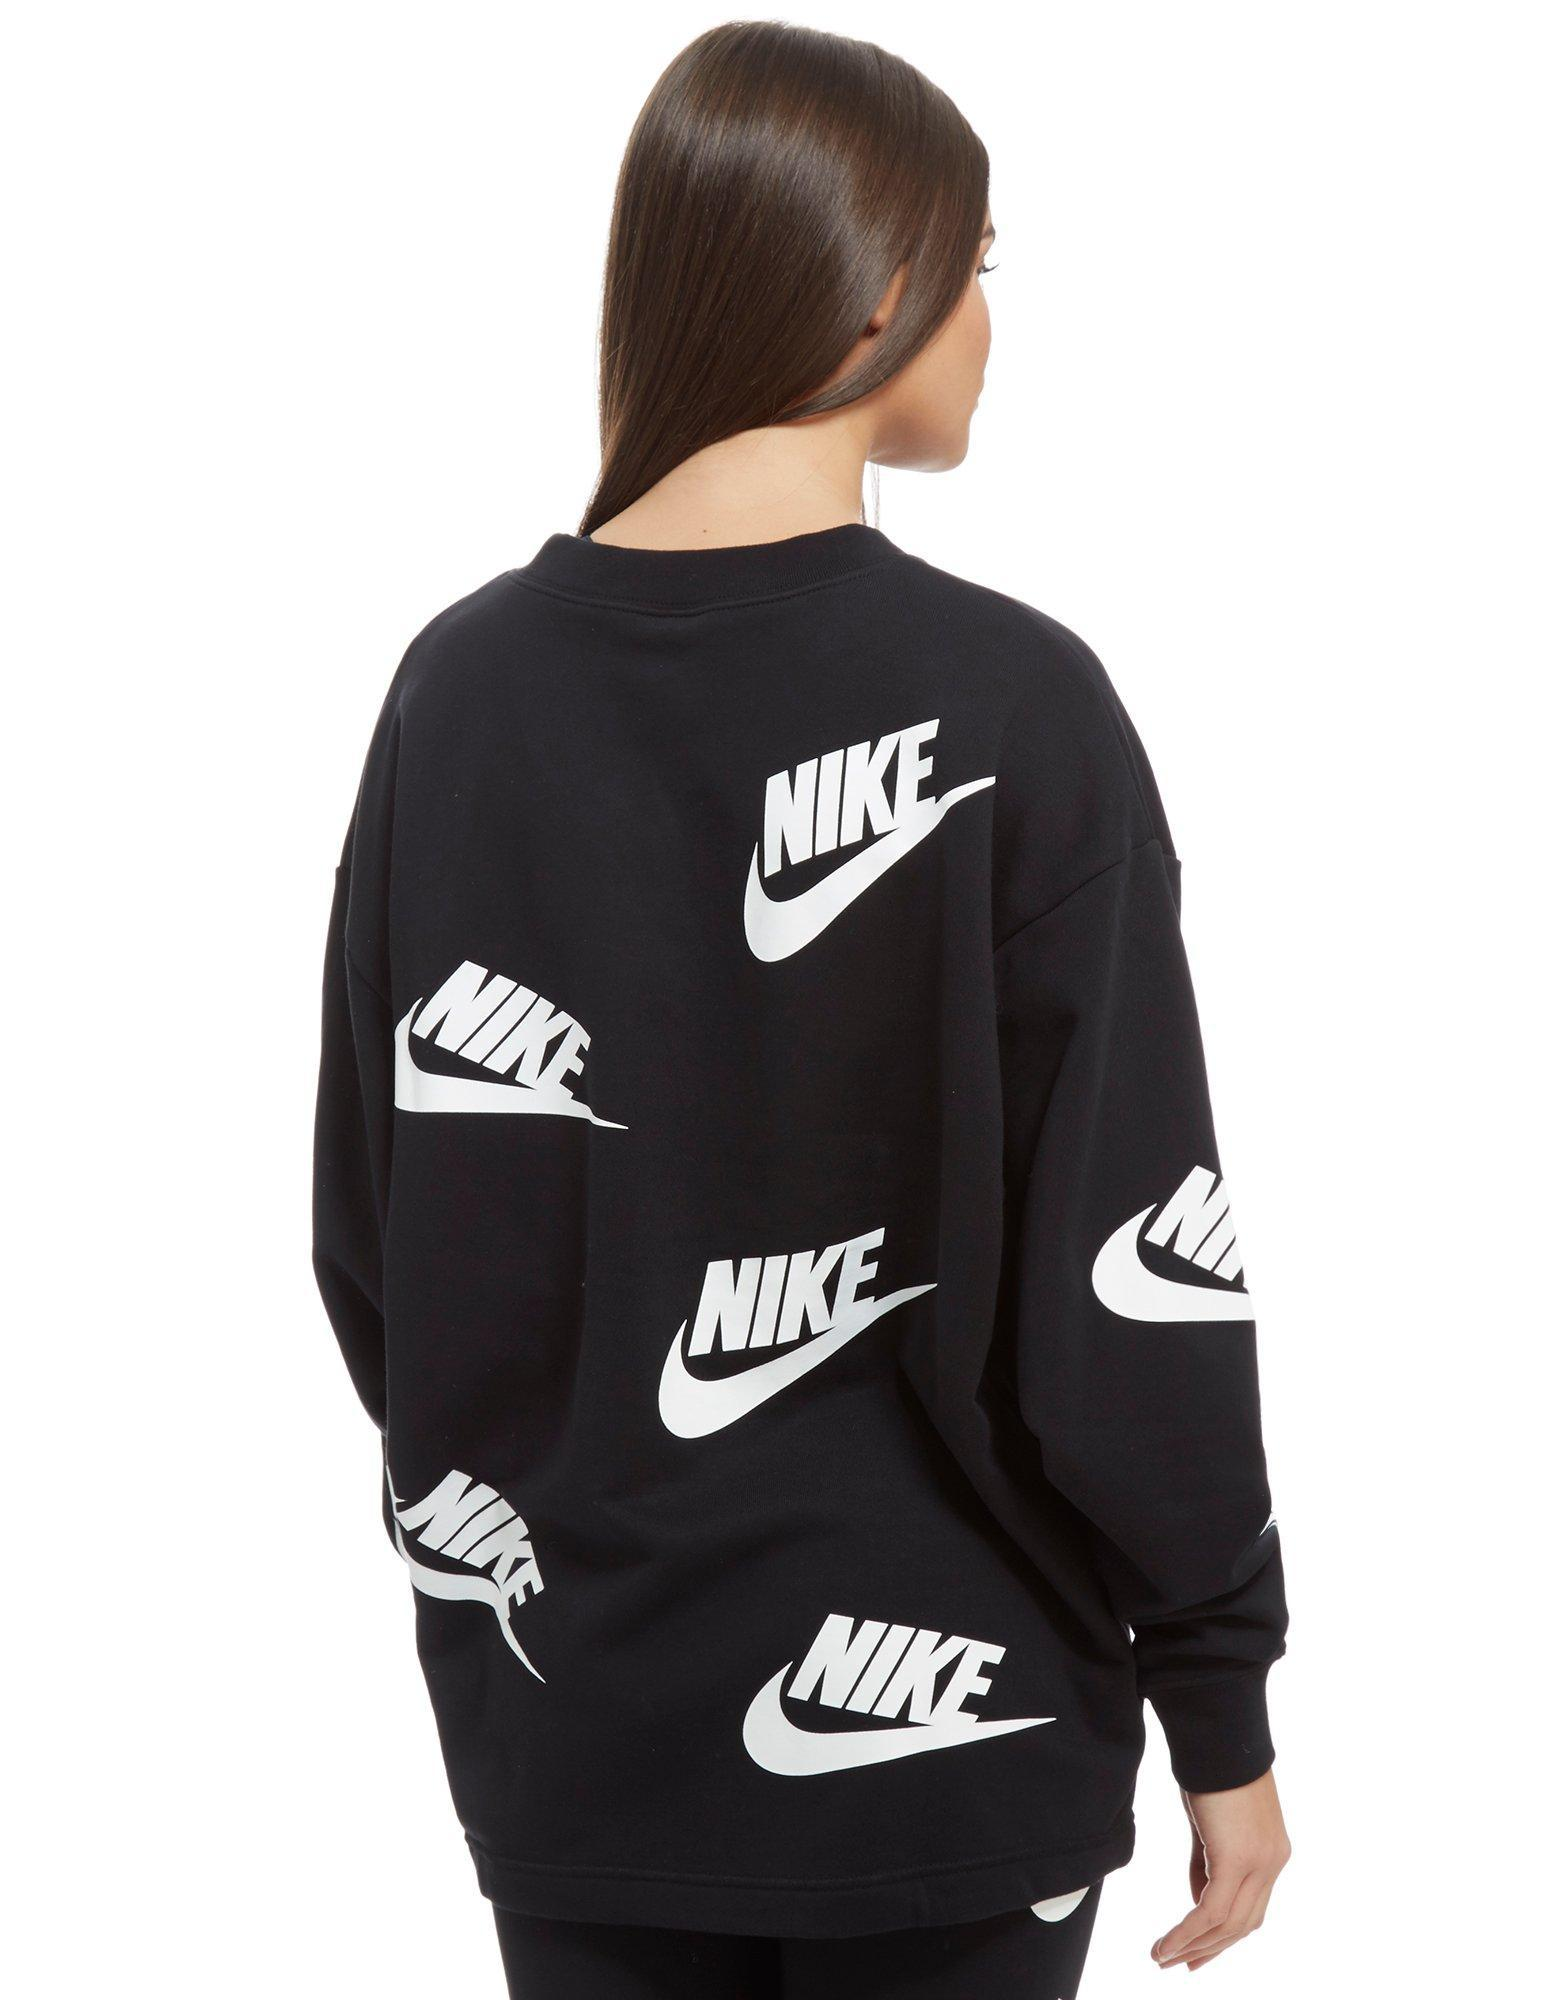 All Over Print Futura Crew Sweatshirt.